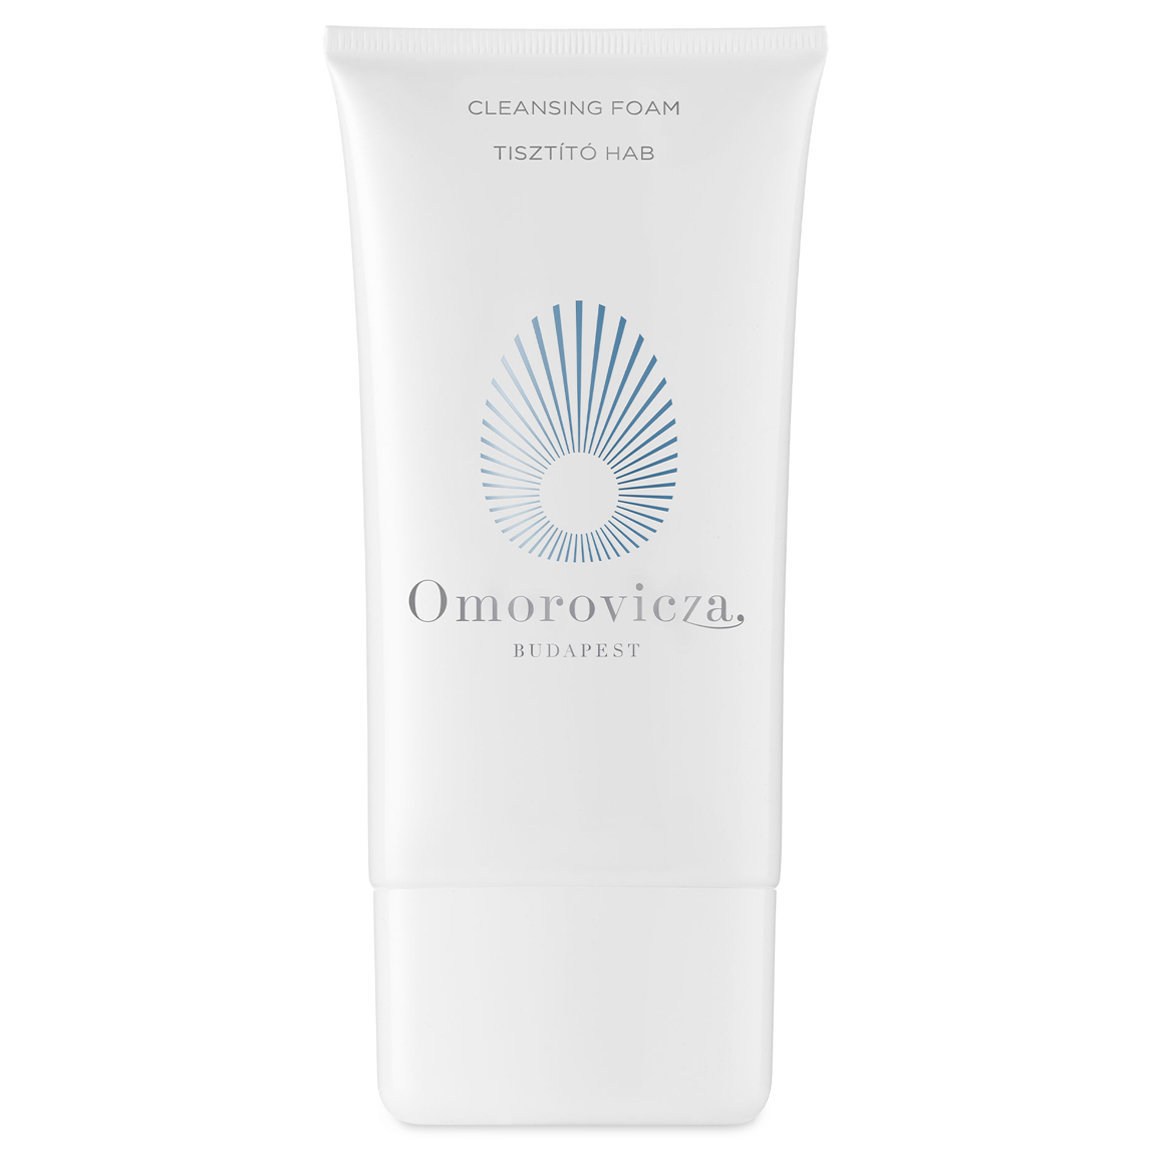 Omorovicza Cleansing Foam 150 ml alternative view 1 - product swatch.